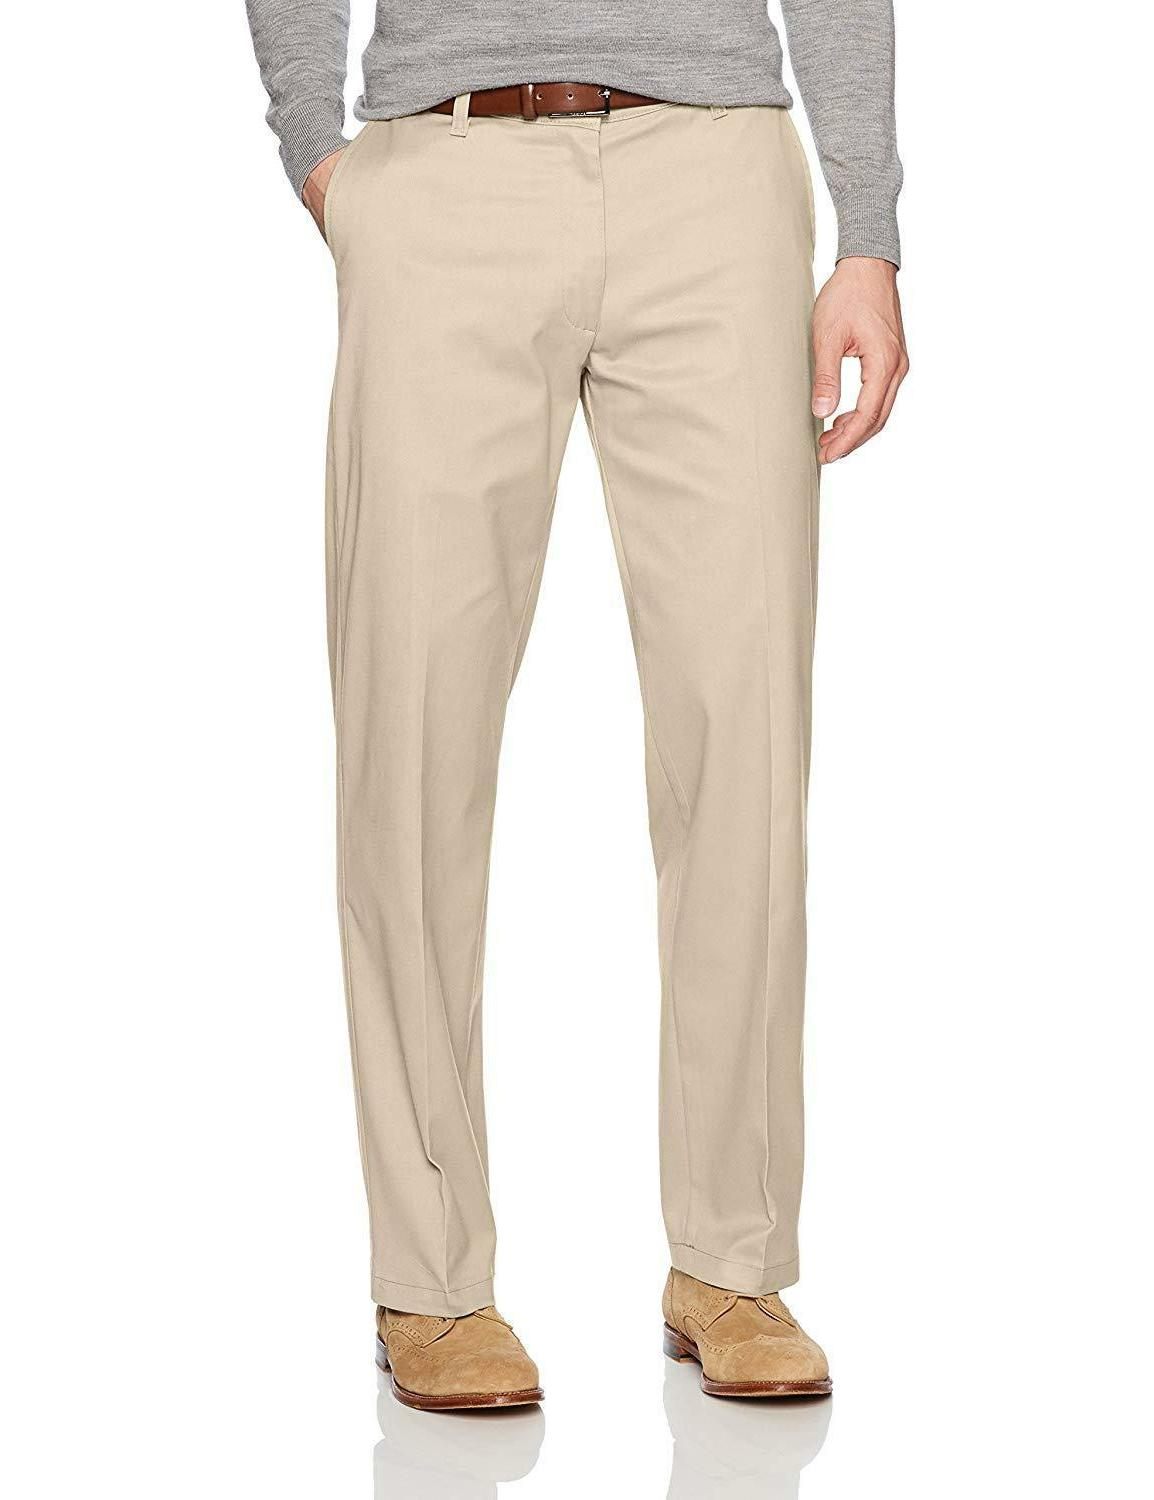 LEE Total Stretch Fit Front Pant